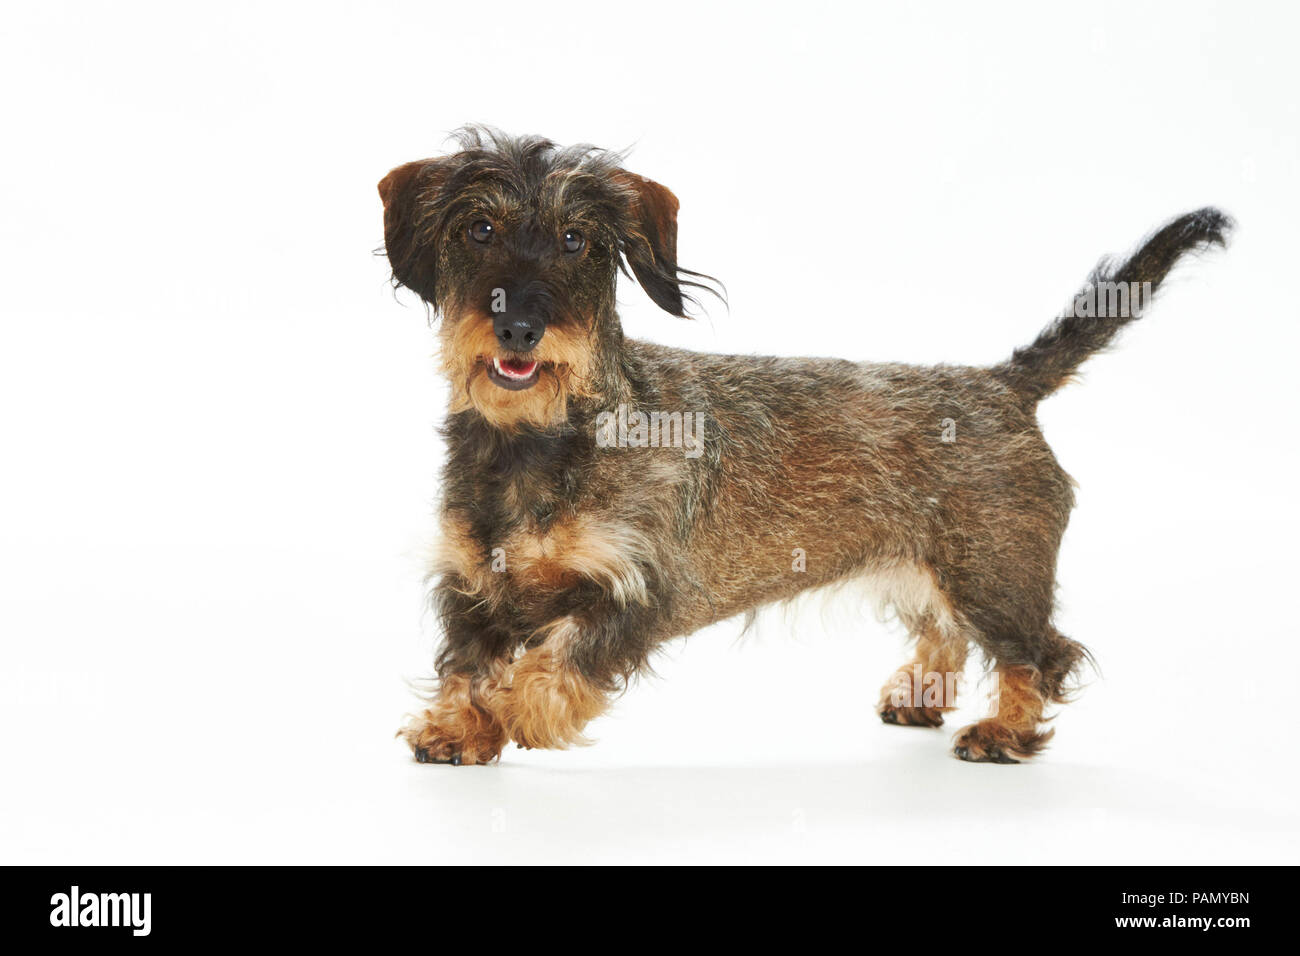 Wire-haired Dachshund. Adult dog running. Studio picture against a white background. Germany - Stock Image